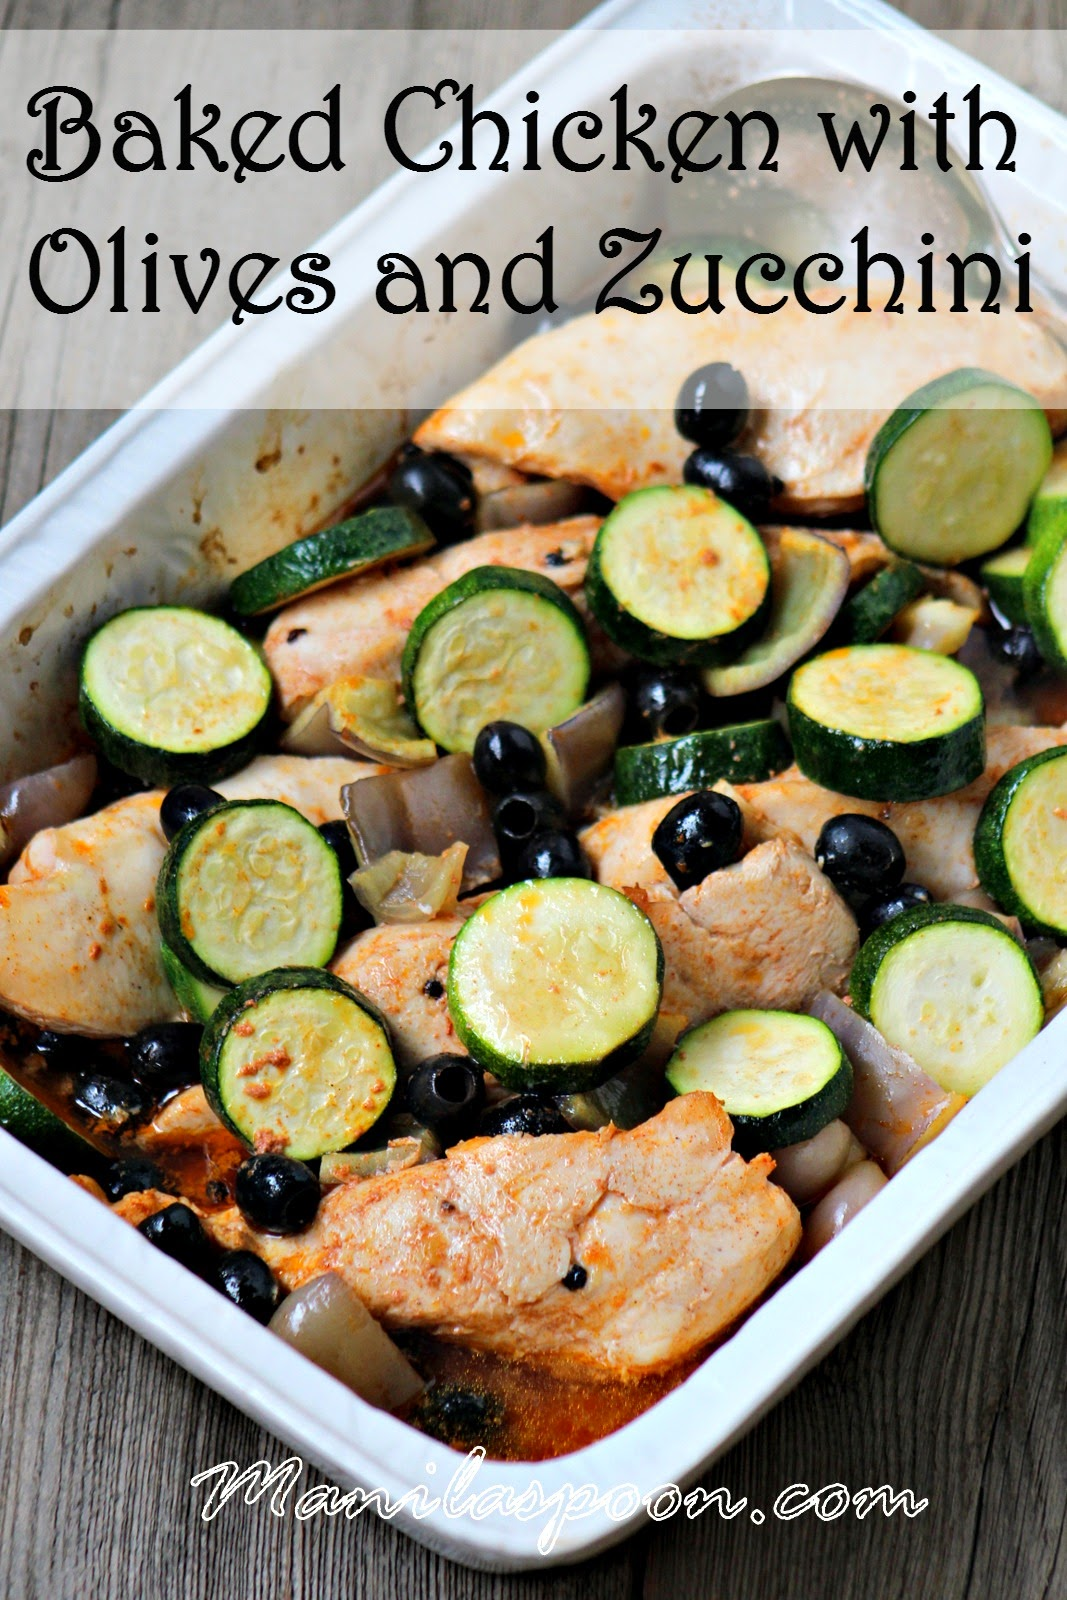 Manila Spoon: Baked Chicken with Olives and Zucchini